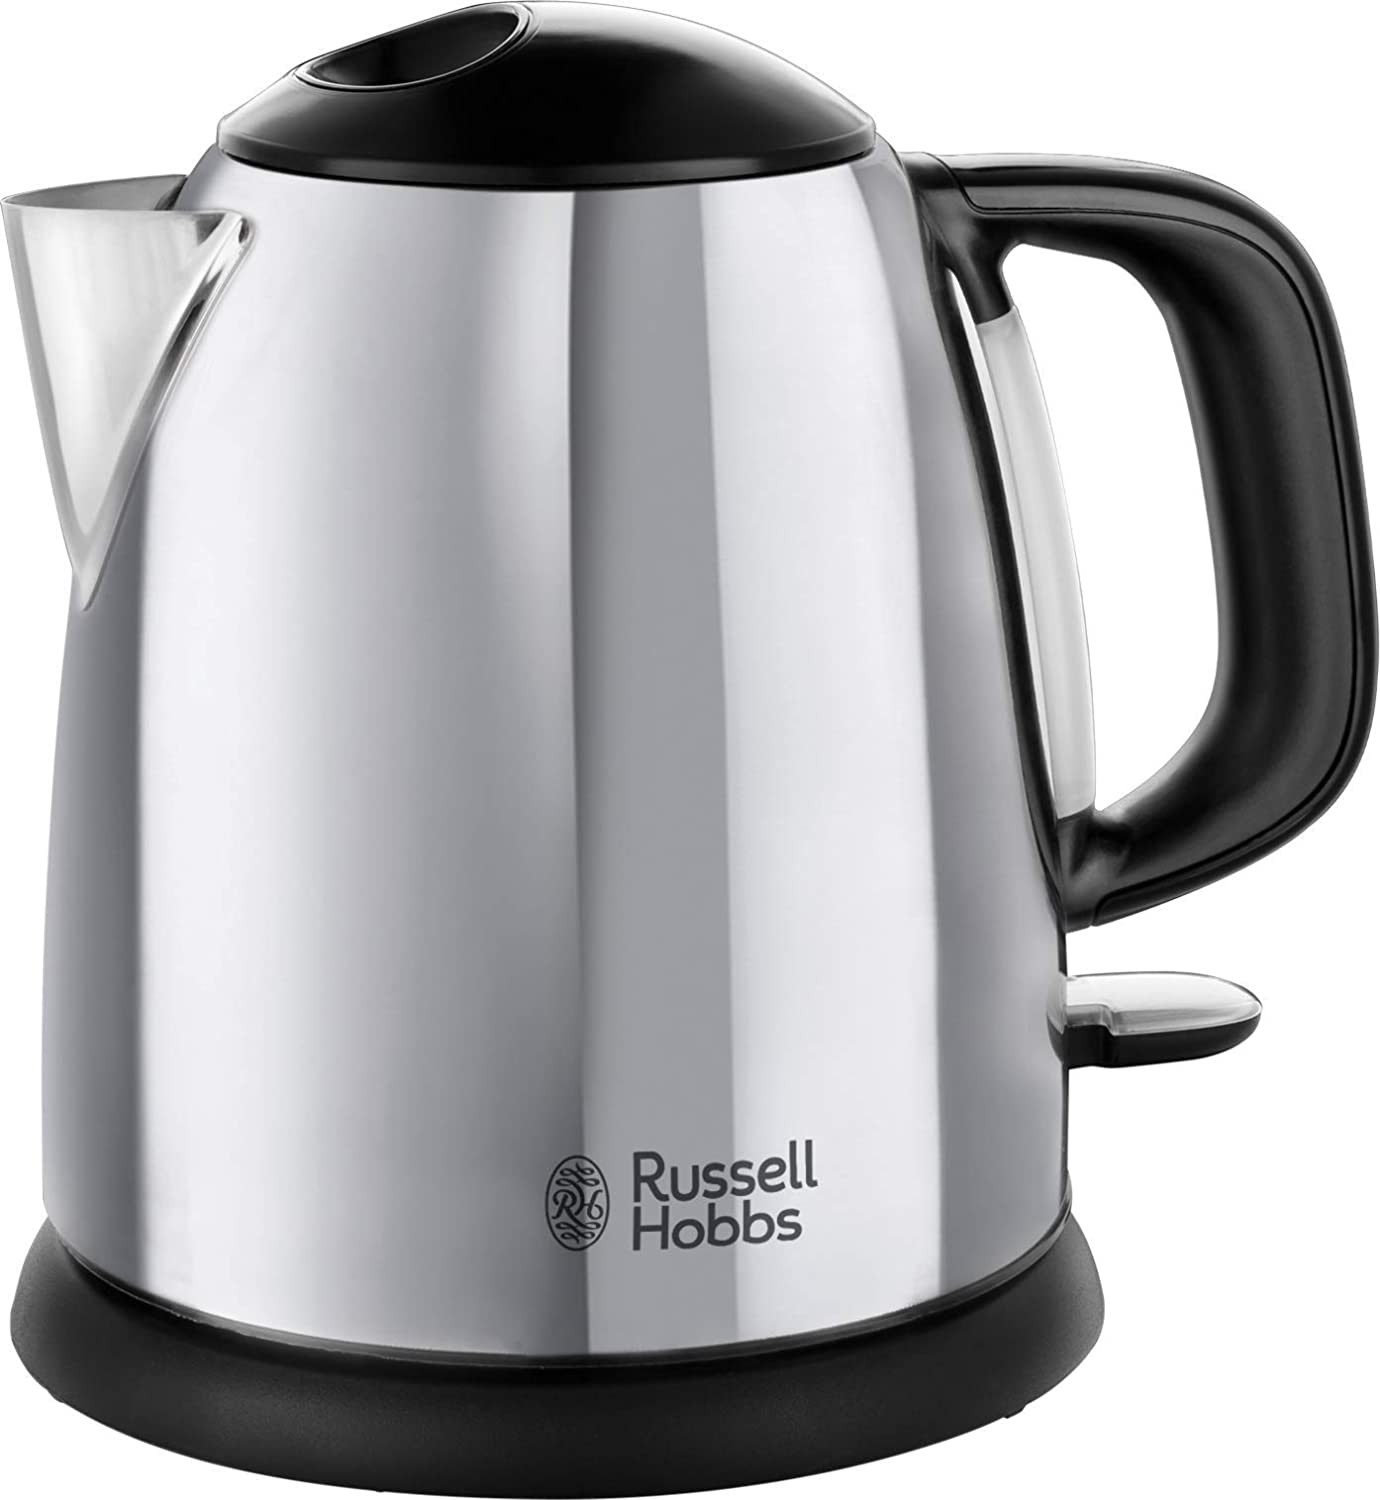 Russell Hobbs Compact Home Small